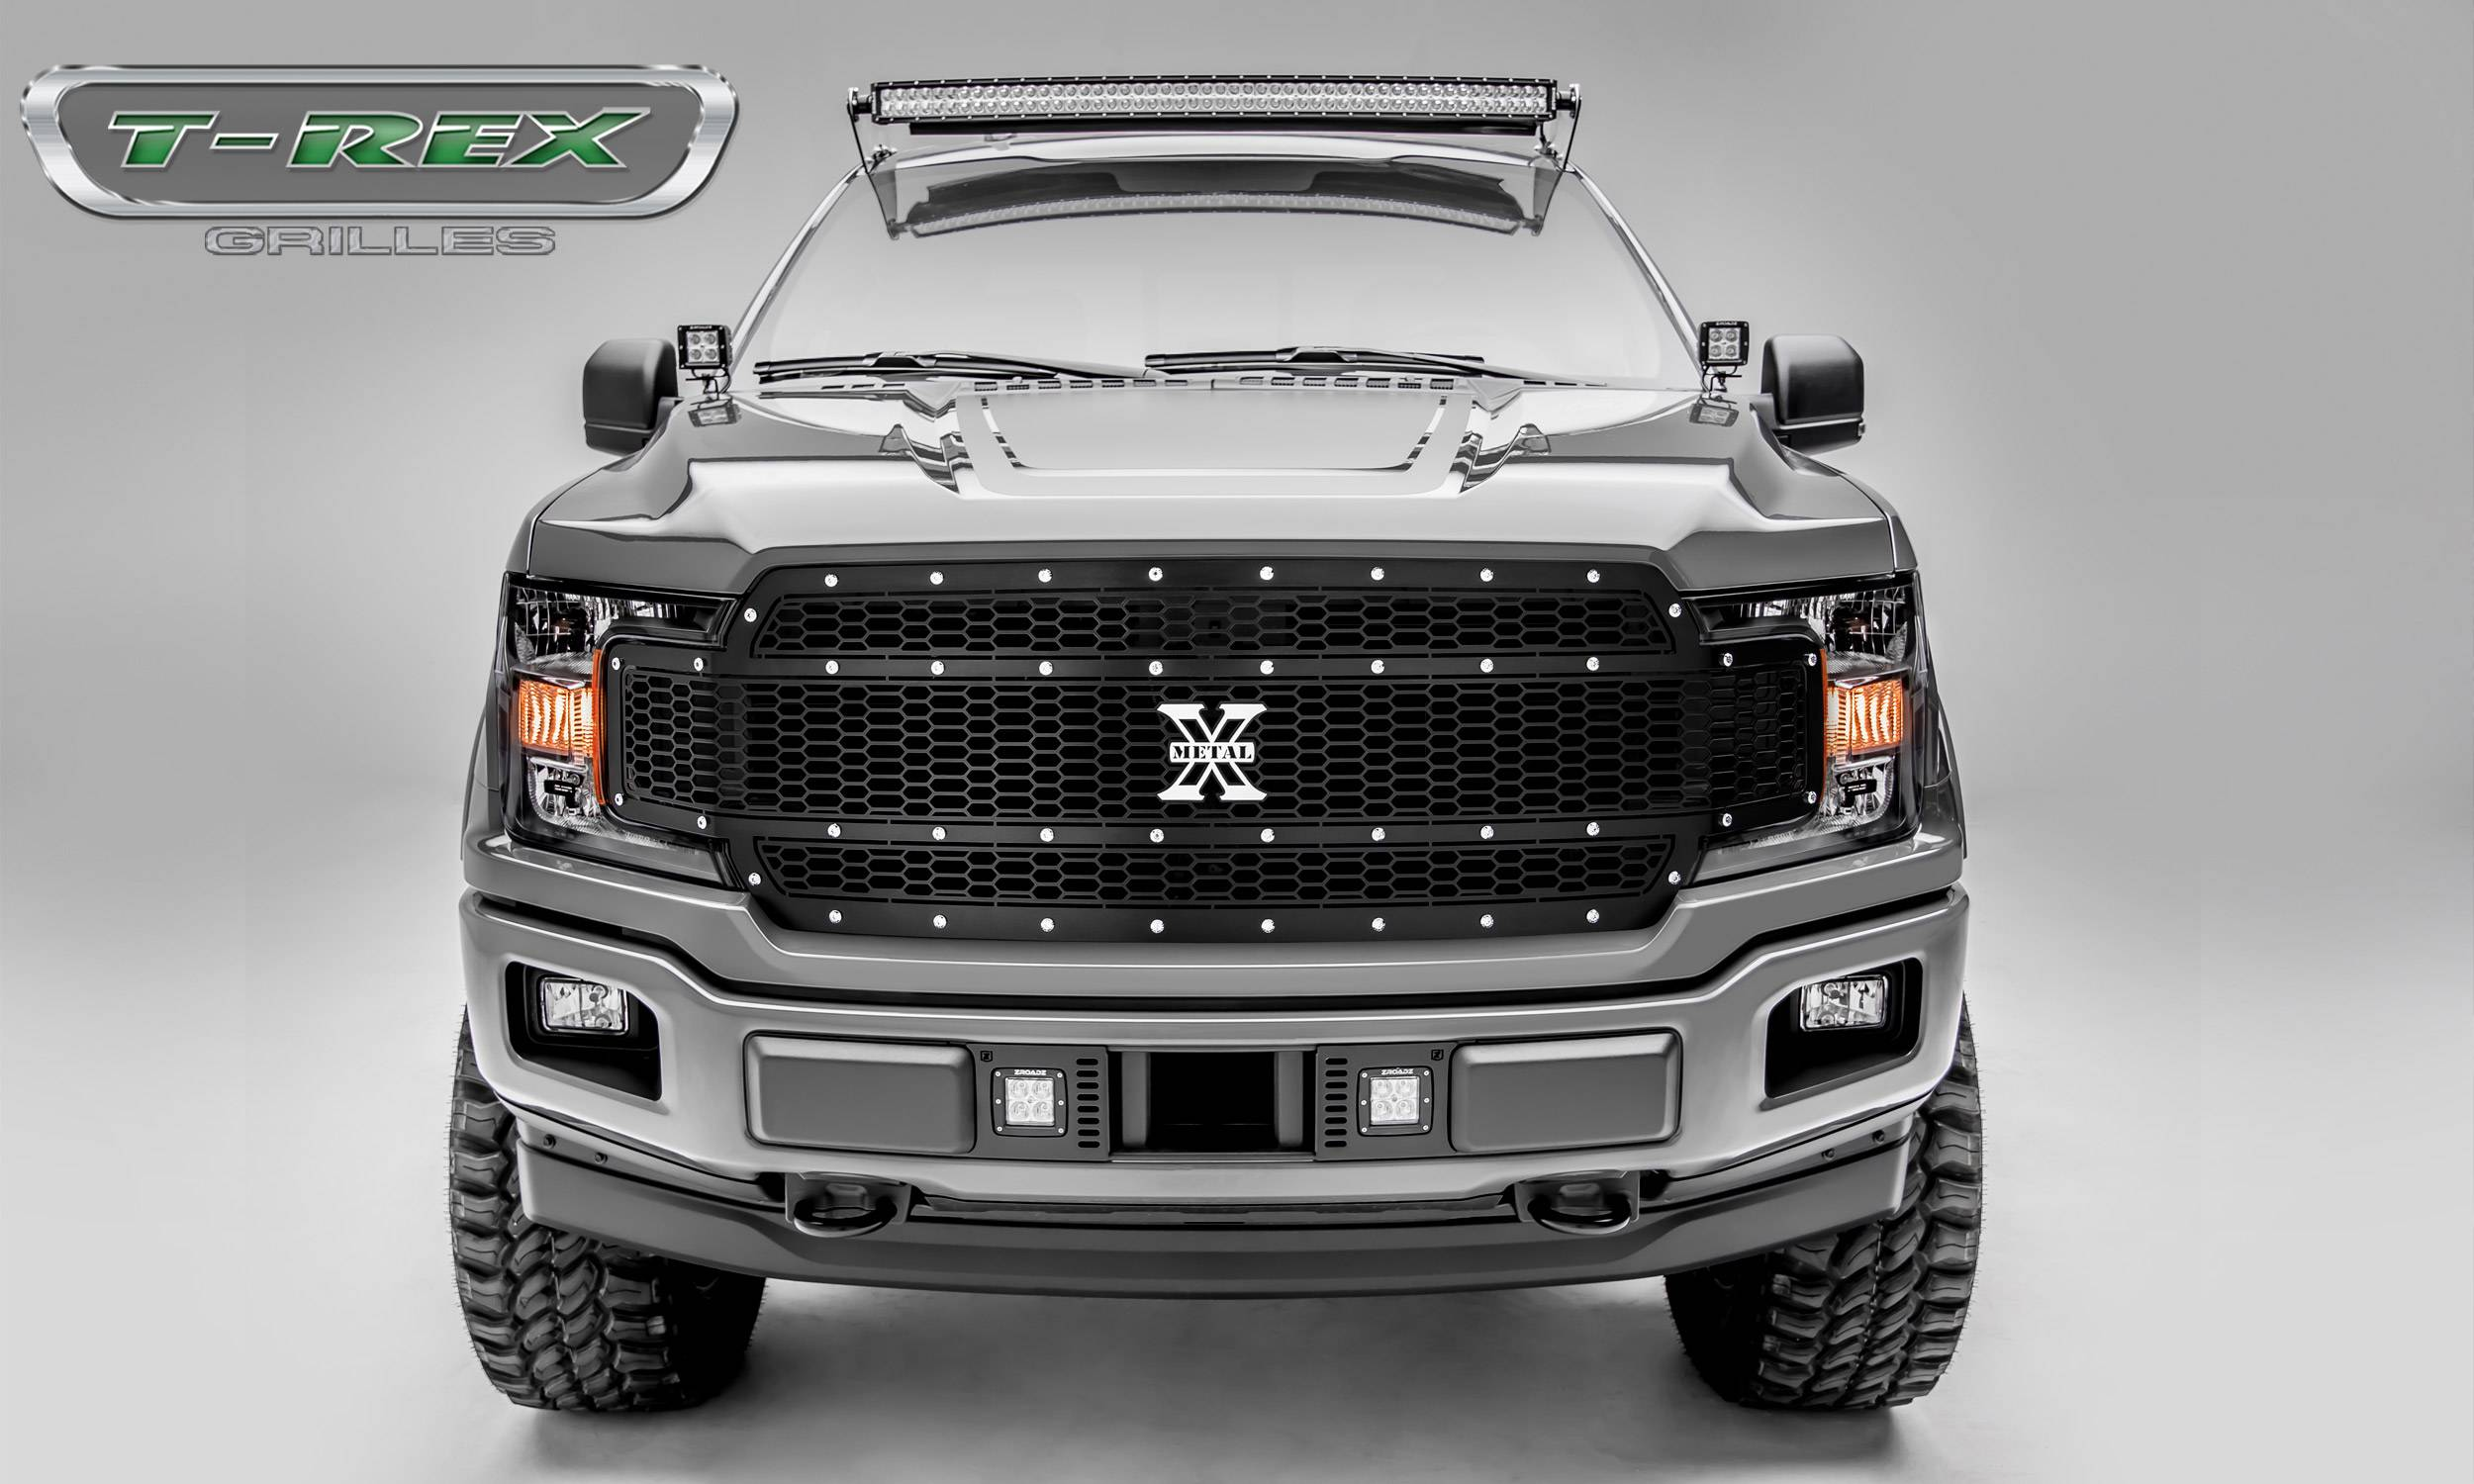 T-REX Ford F-150 - Laser X-Metal Series - Main Grille Replacement - Laser Cut Steel Pattern - Chrome Studs with Black Powdercoat Finish - Pt # 7715841